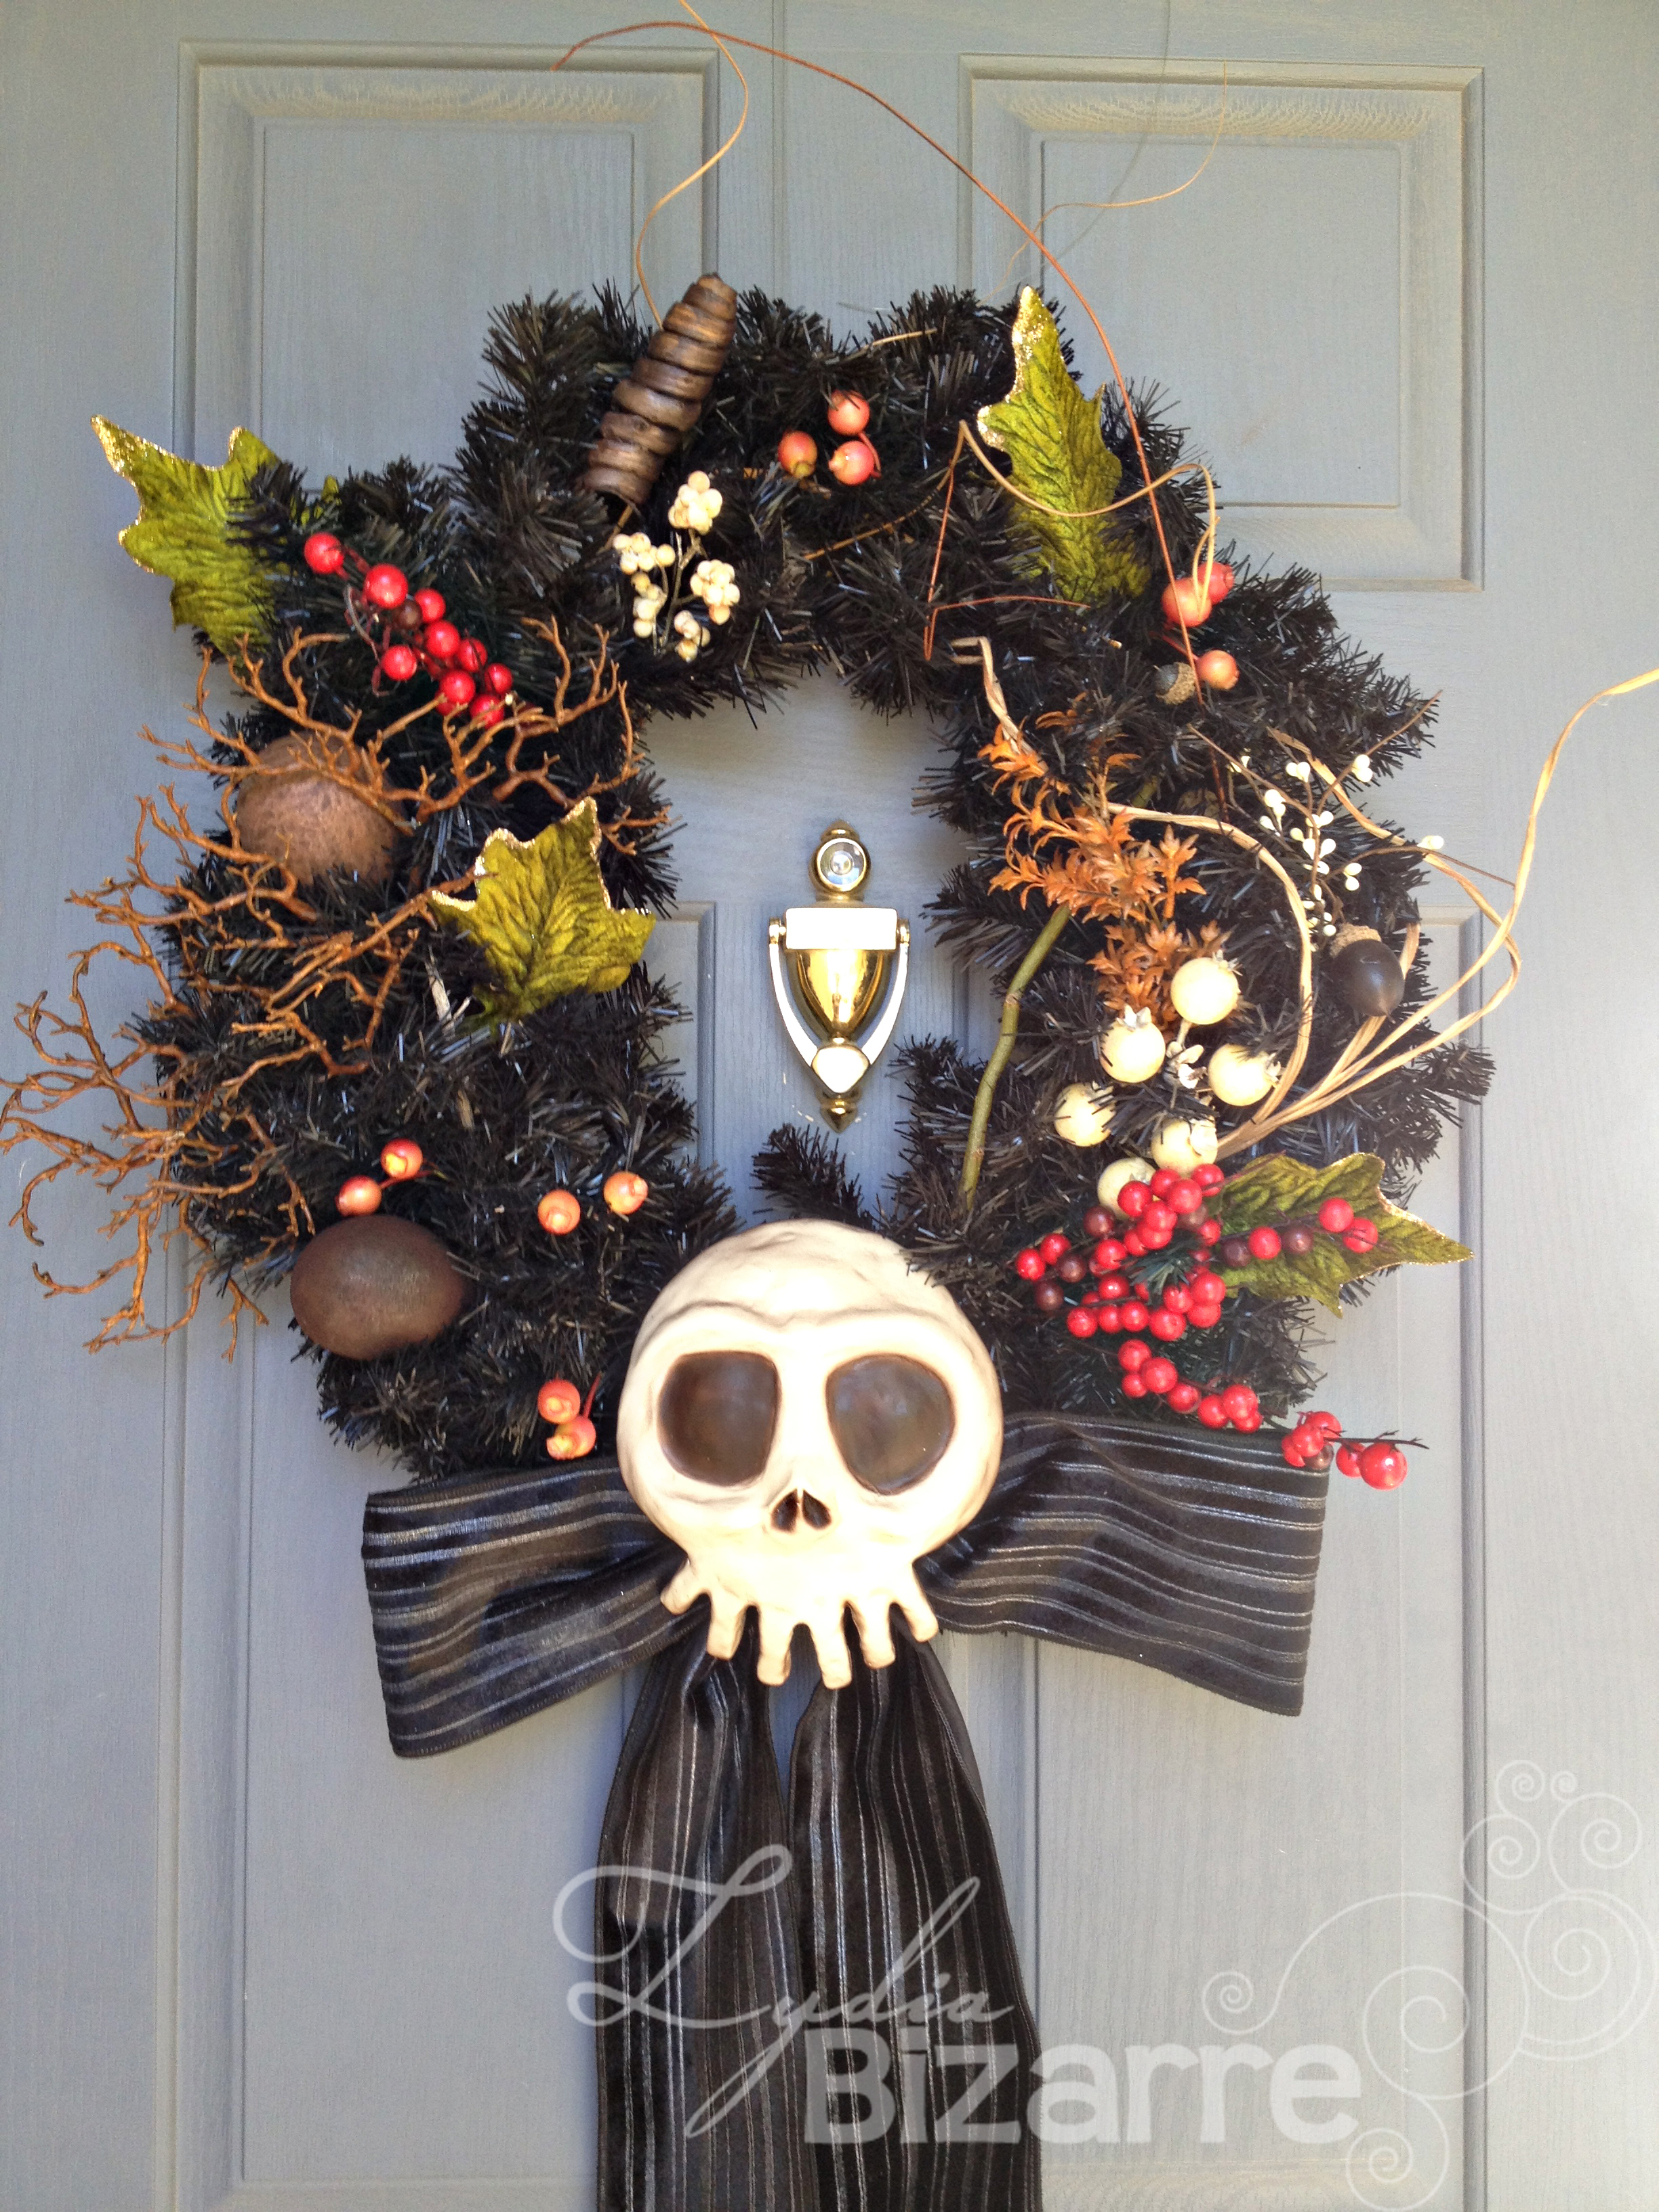 Nightmare before christmas skull nightmare before christmas skull haunted mansion inspired wreath solutioingenieria Gallery